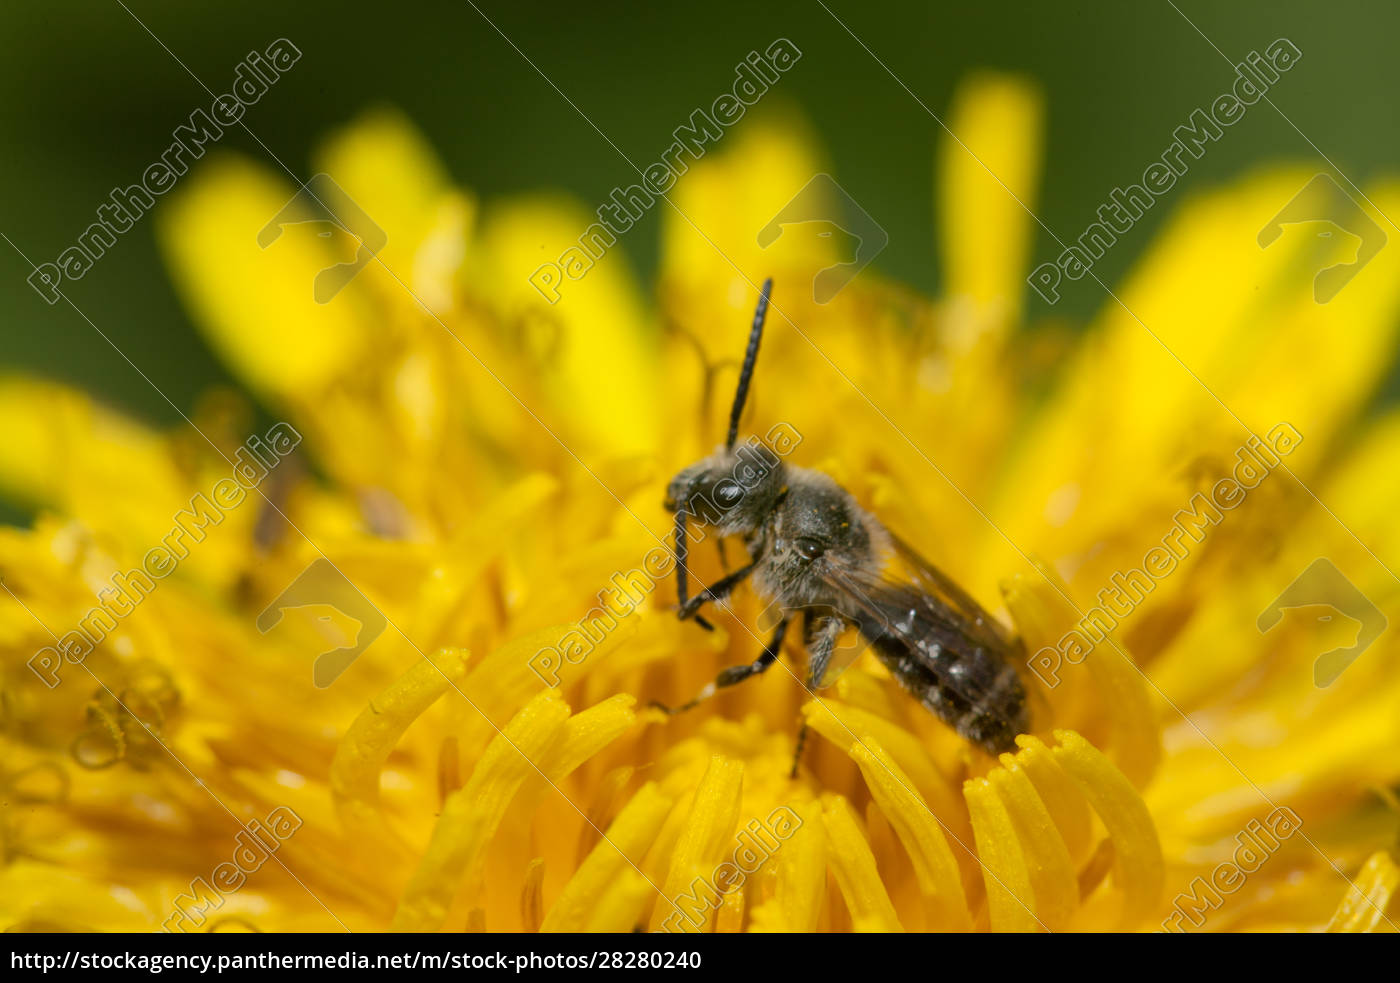 a, small, solitary, bee, in, a - 28280240